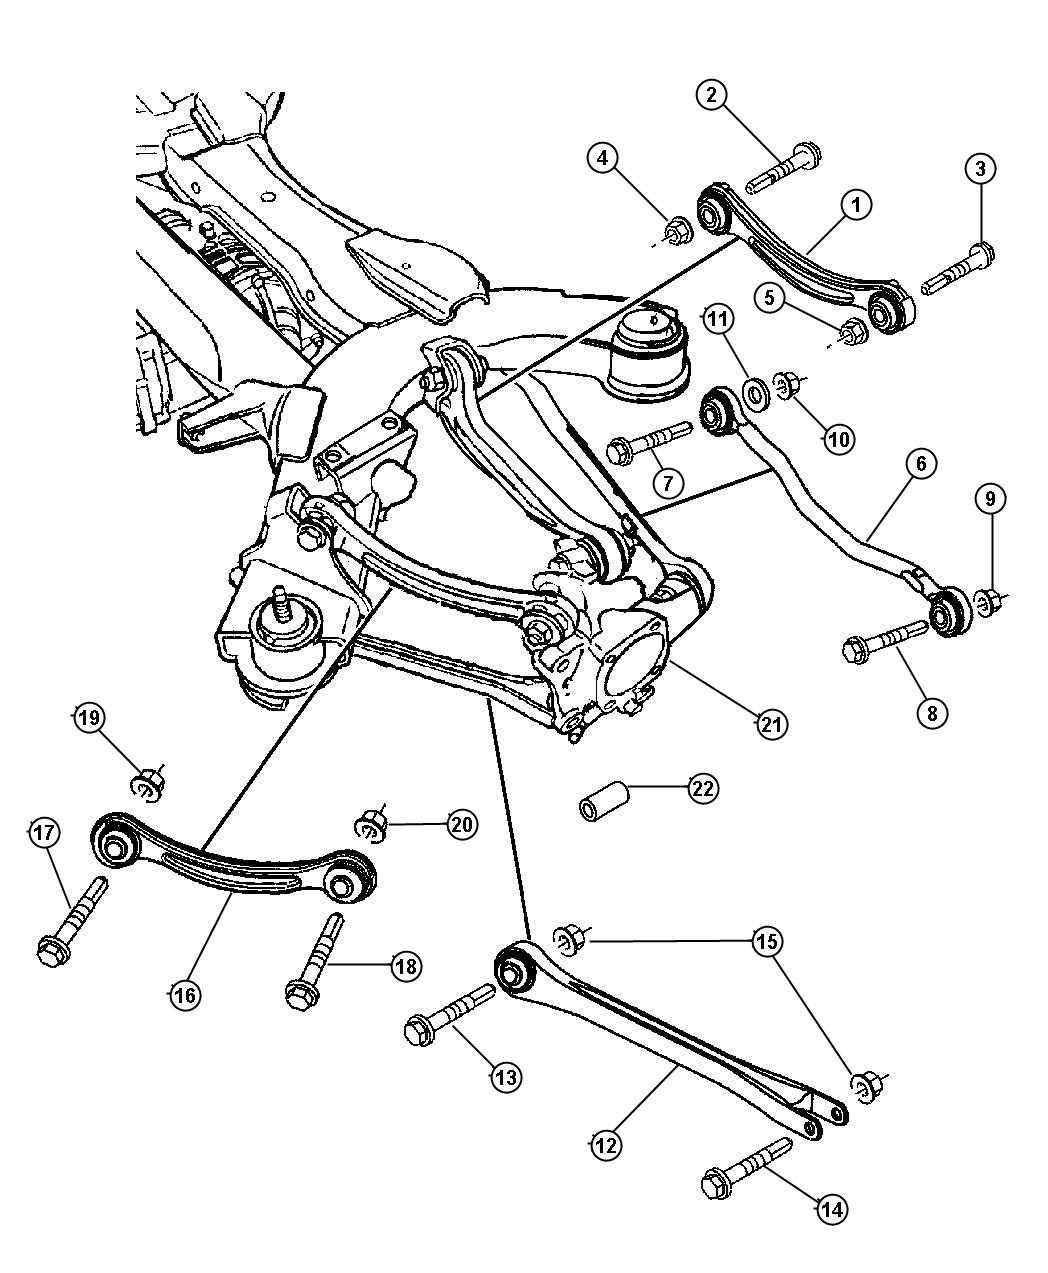 Chrysler Pacifica Rear Suspension Diagram